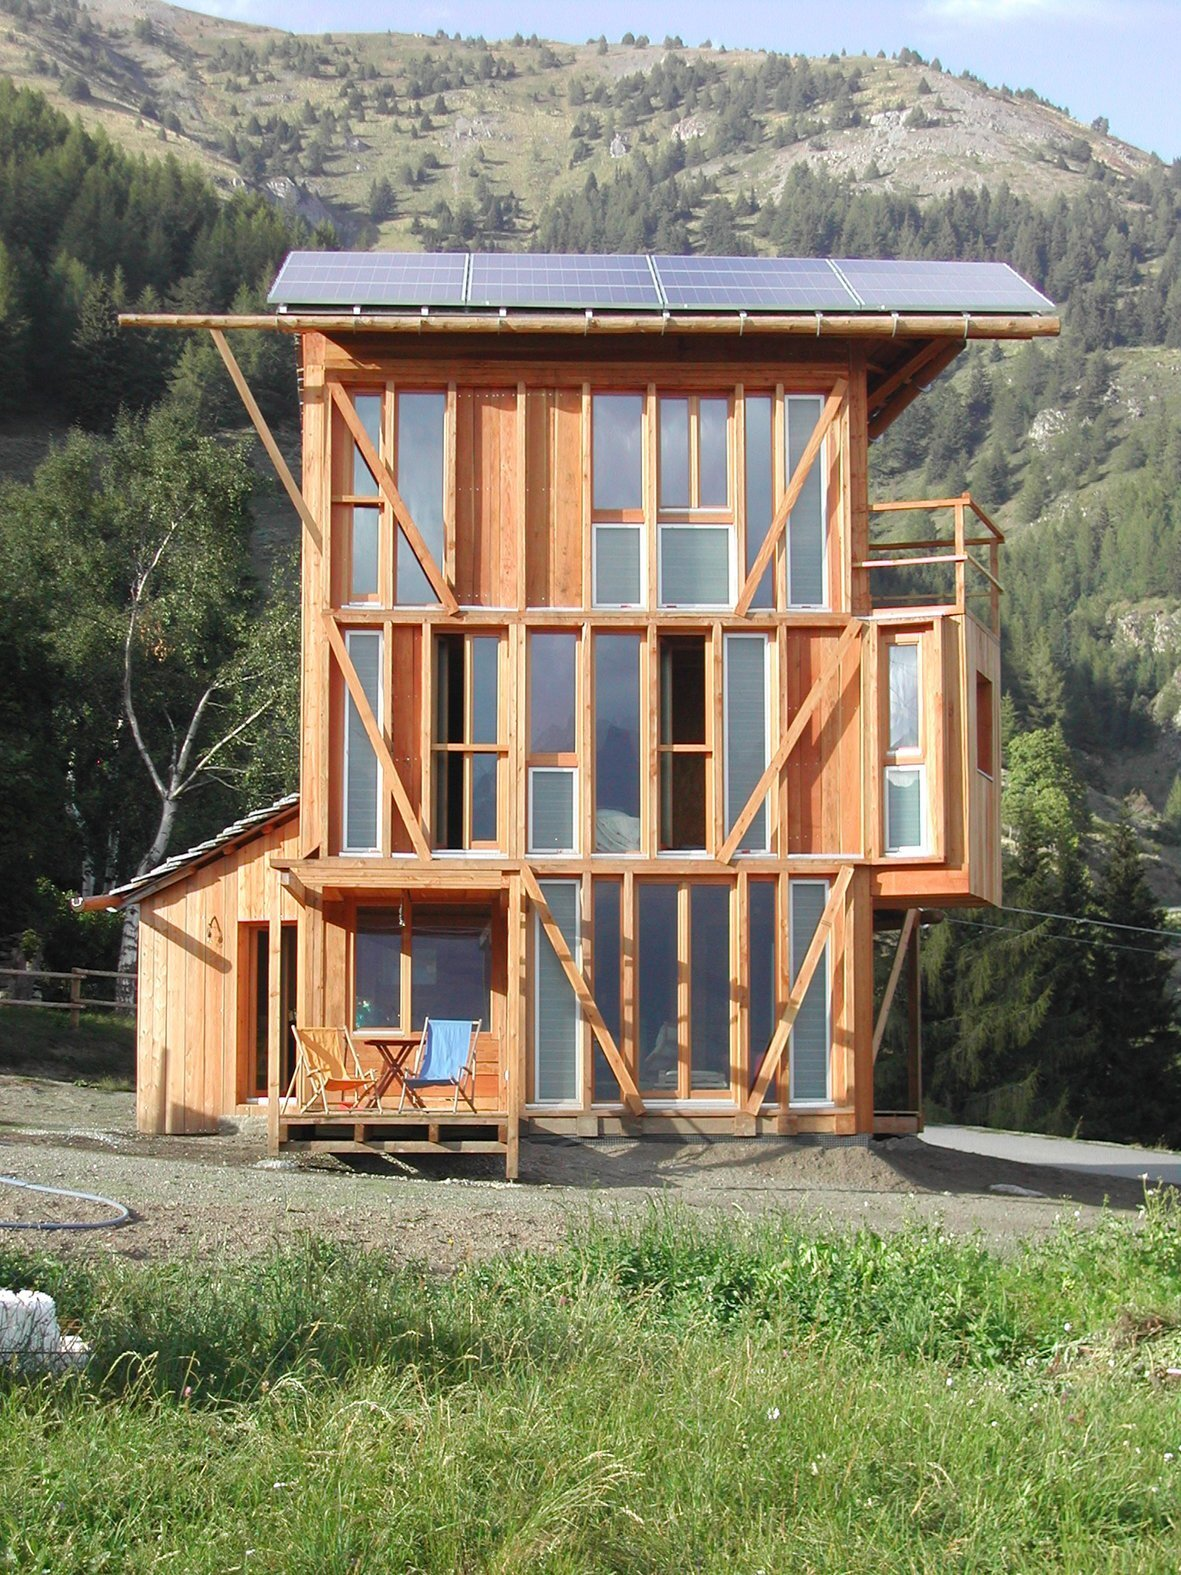 Solar House - Solar Powered Home - Studio Albori - Italy - Exterior - Humble Homes